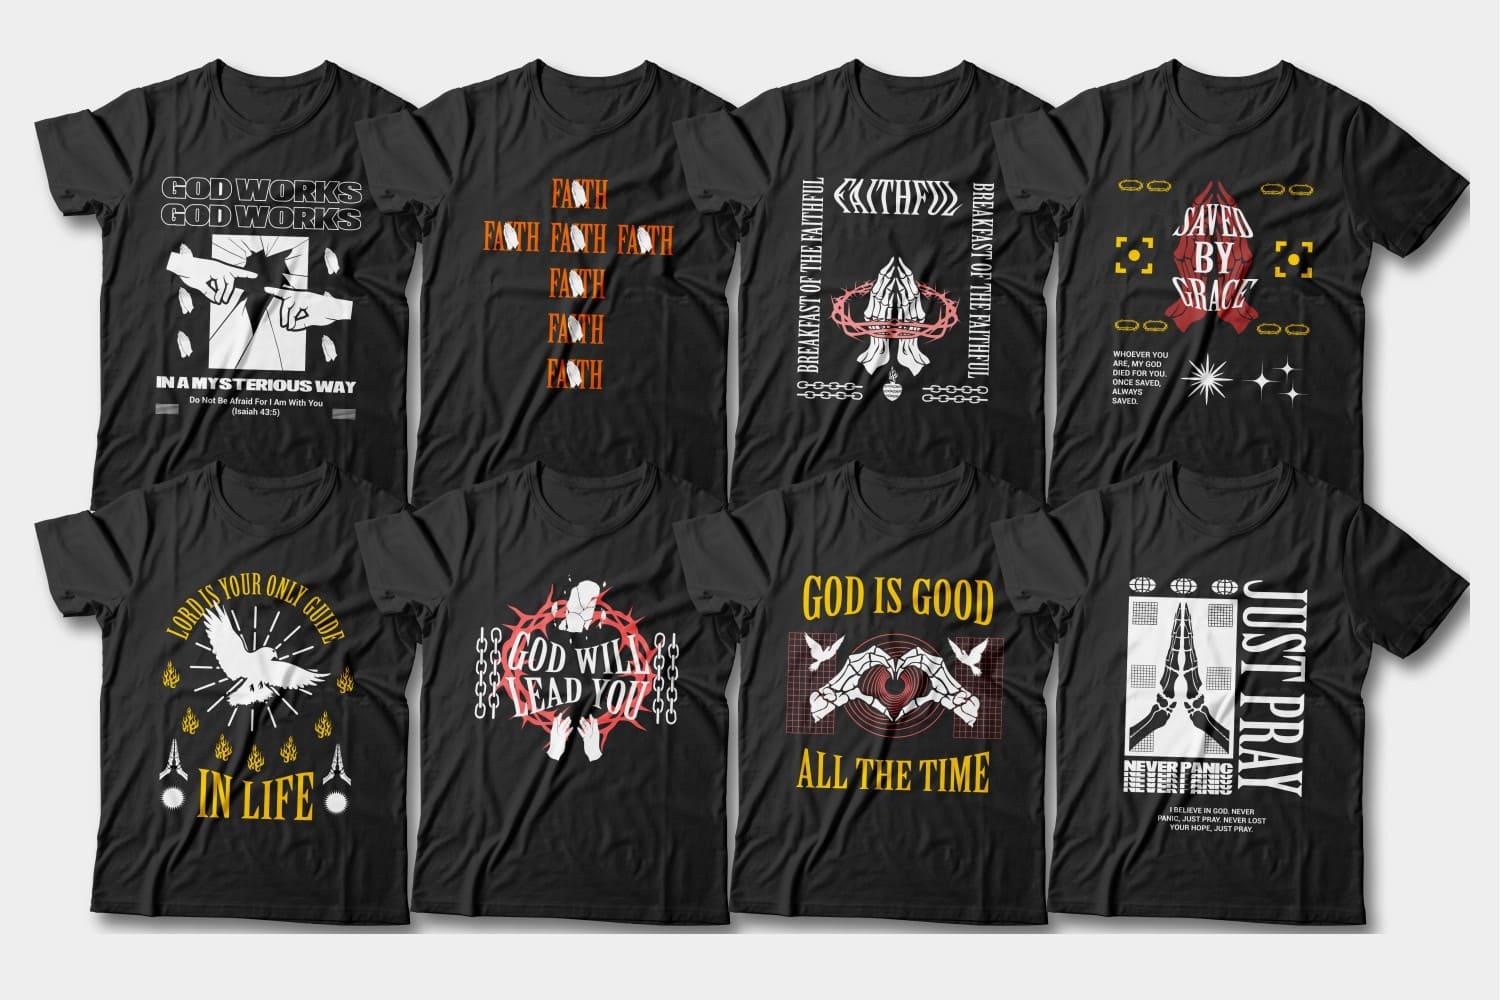 All black t-shirts with colorful lettering and pictures.